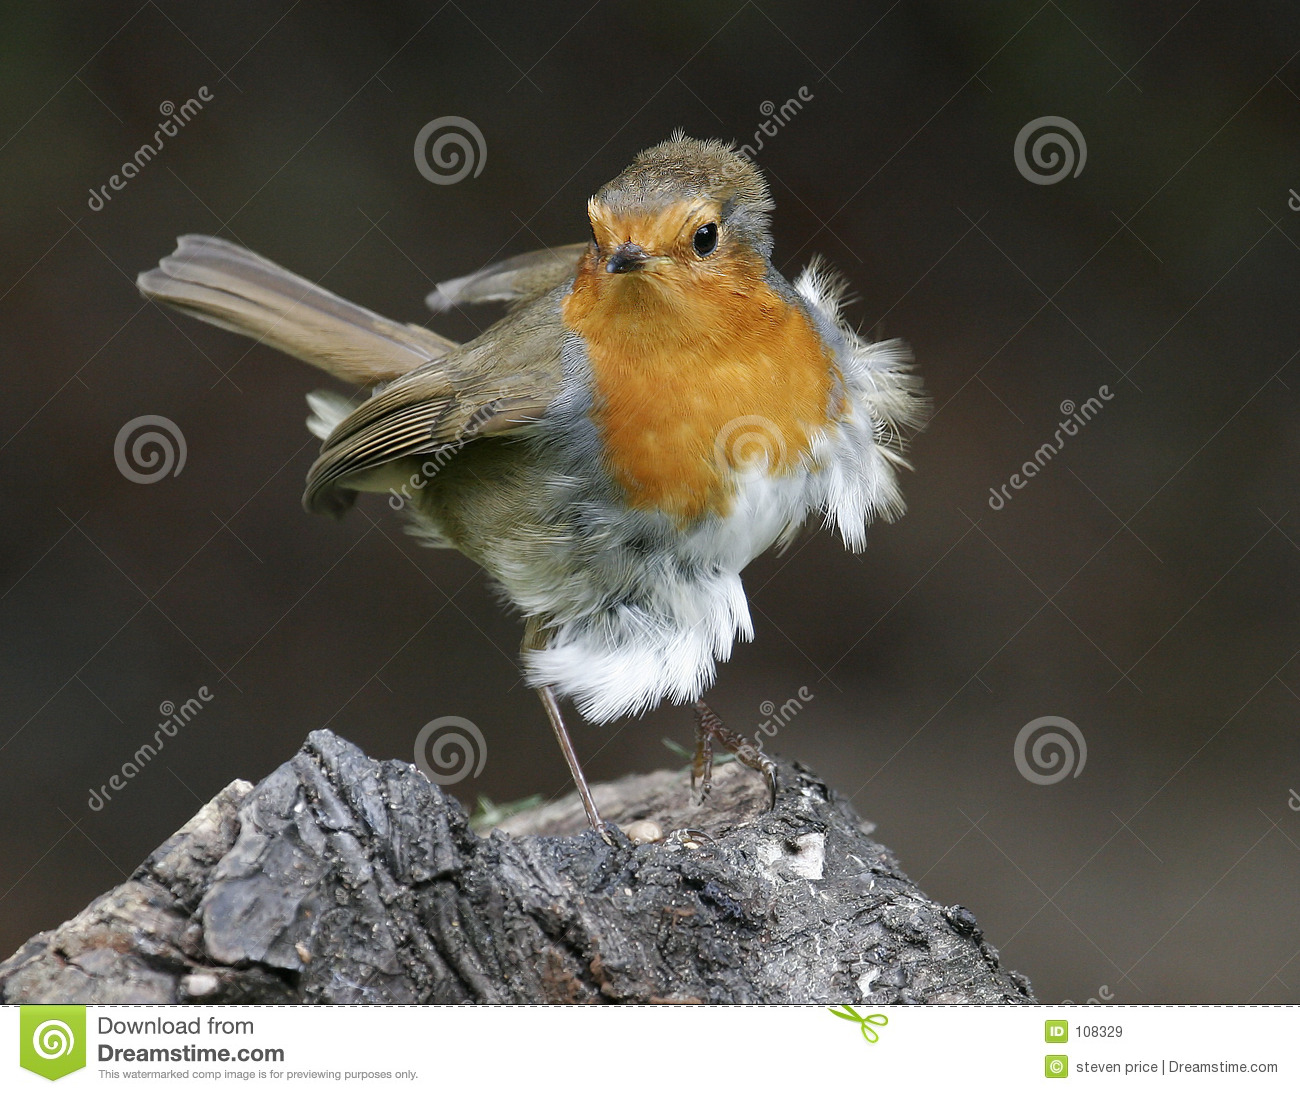 Robin blowing in the wind